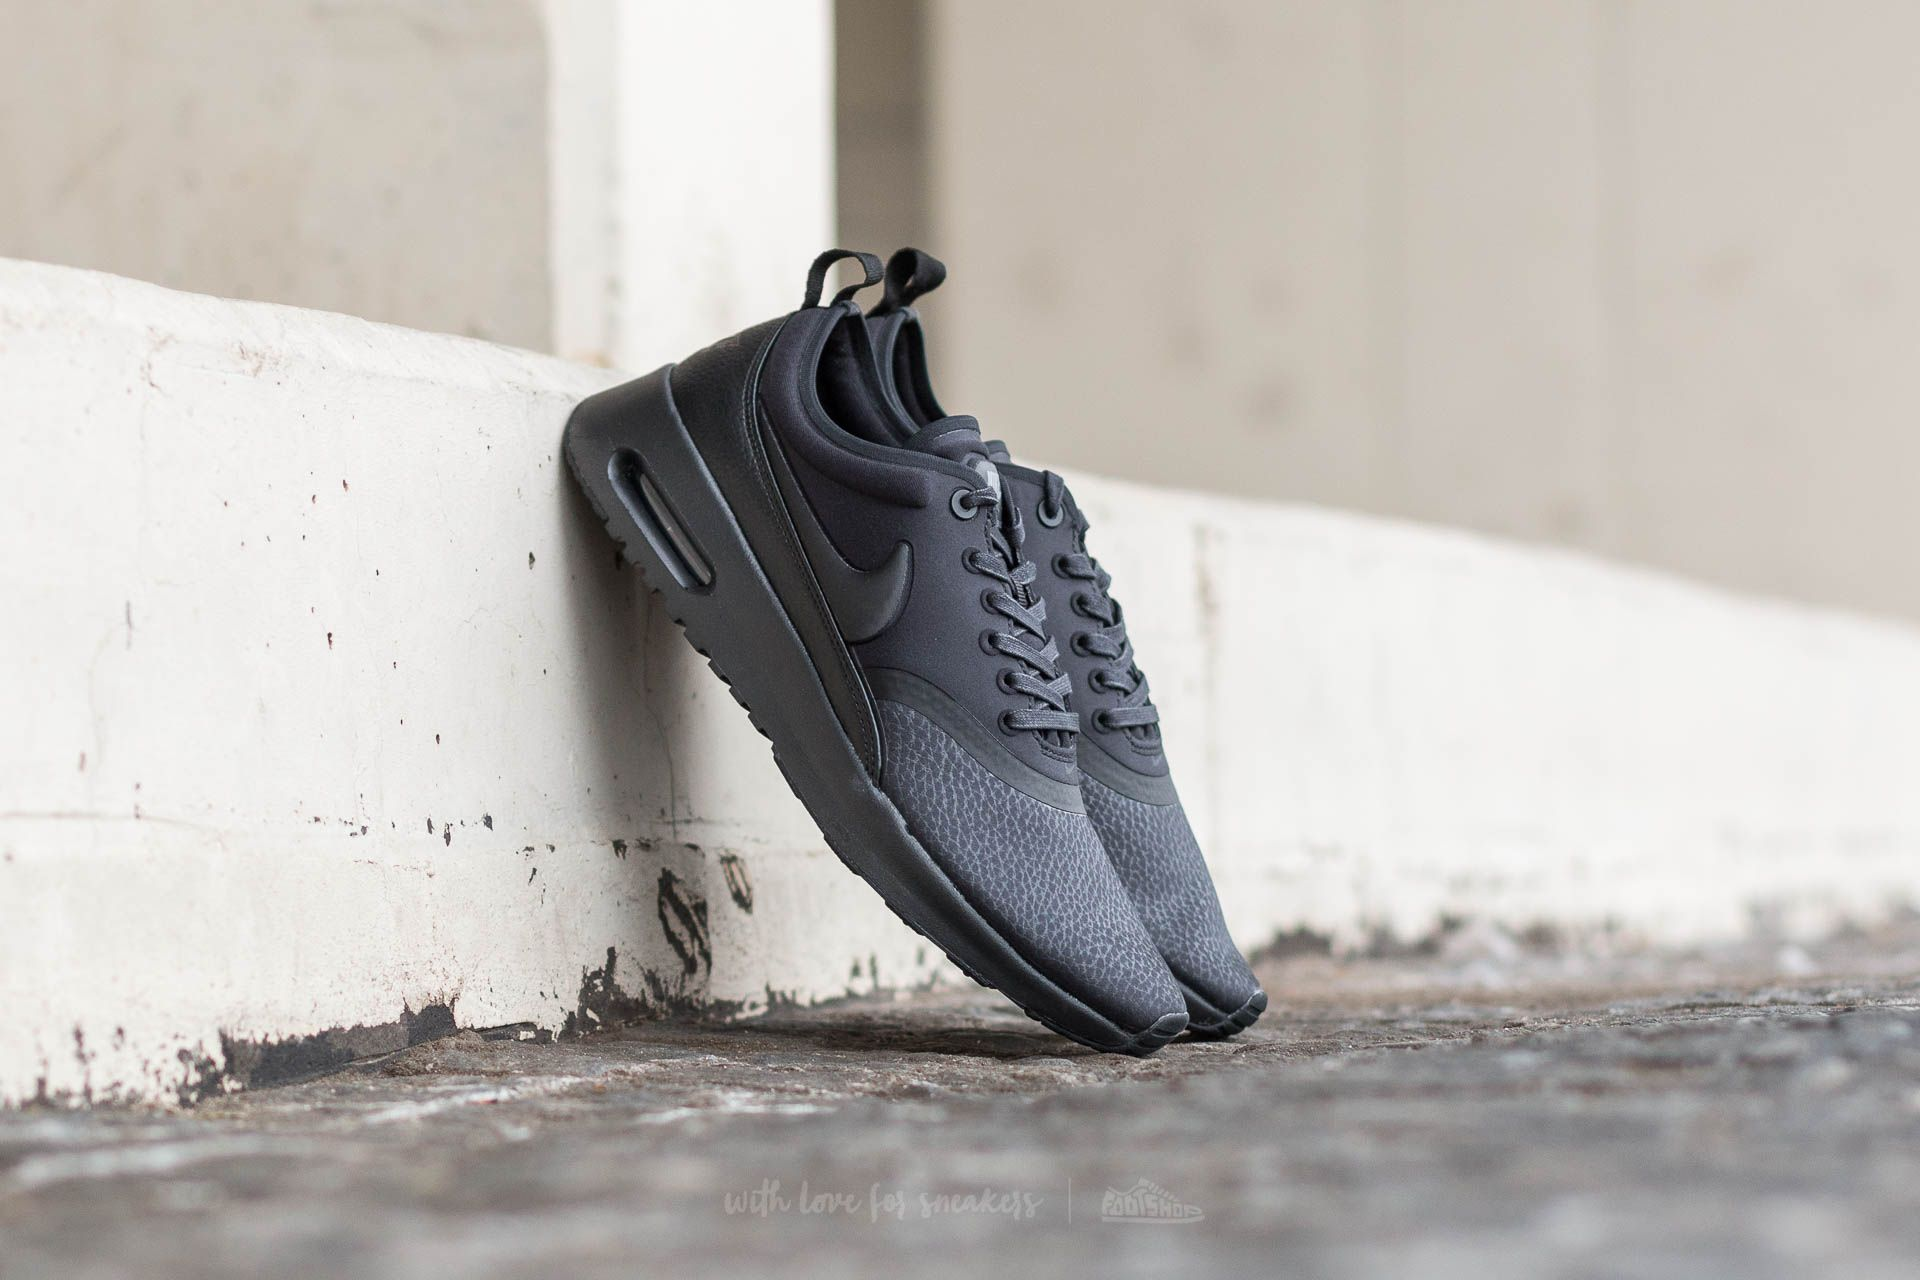 43cefd6f5ebe0 Nike W Air Max Thea Ultra Premium Black  Black-Cool Grey